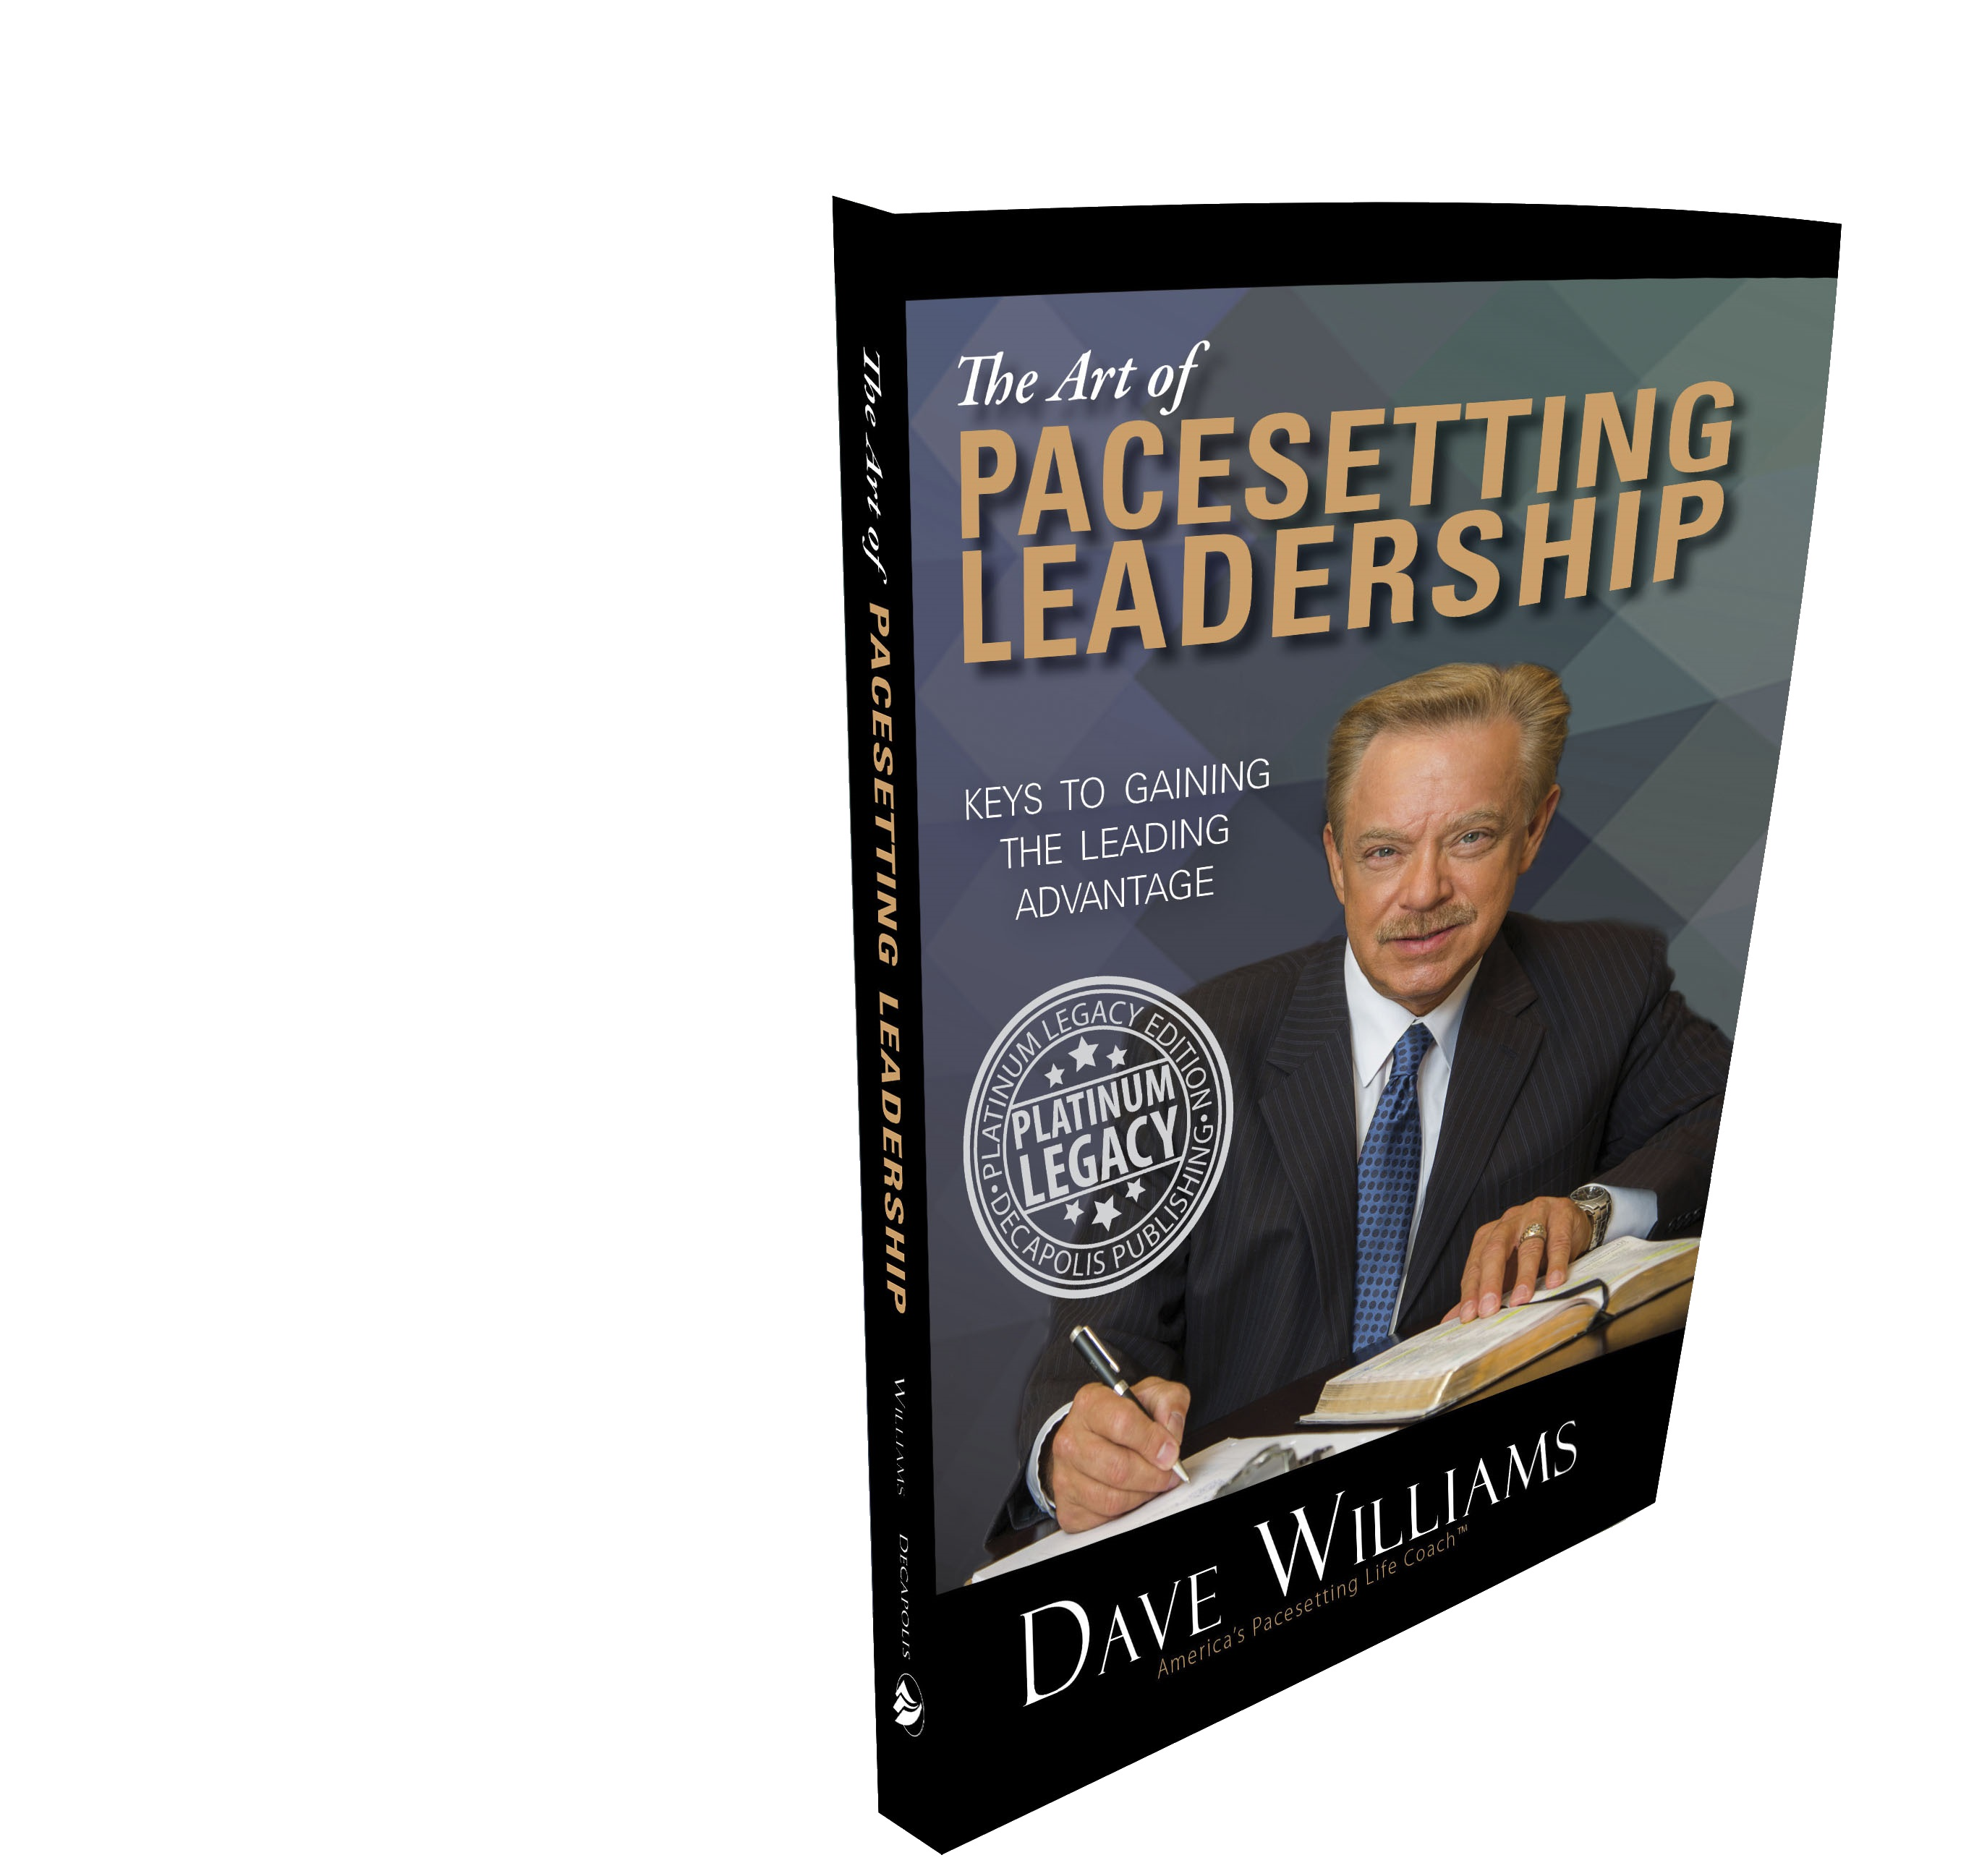 The Art of Pacesetting Leadership Book